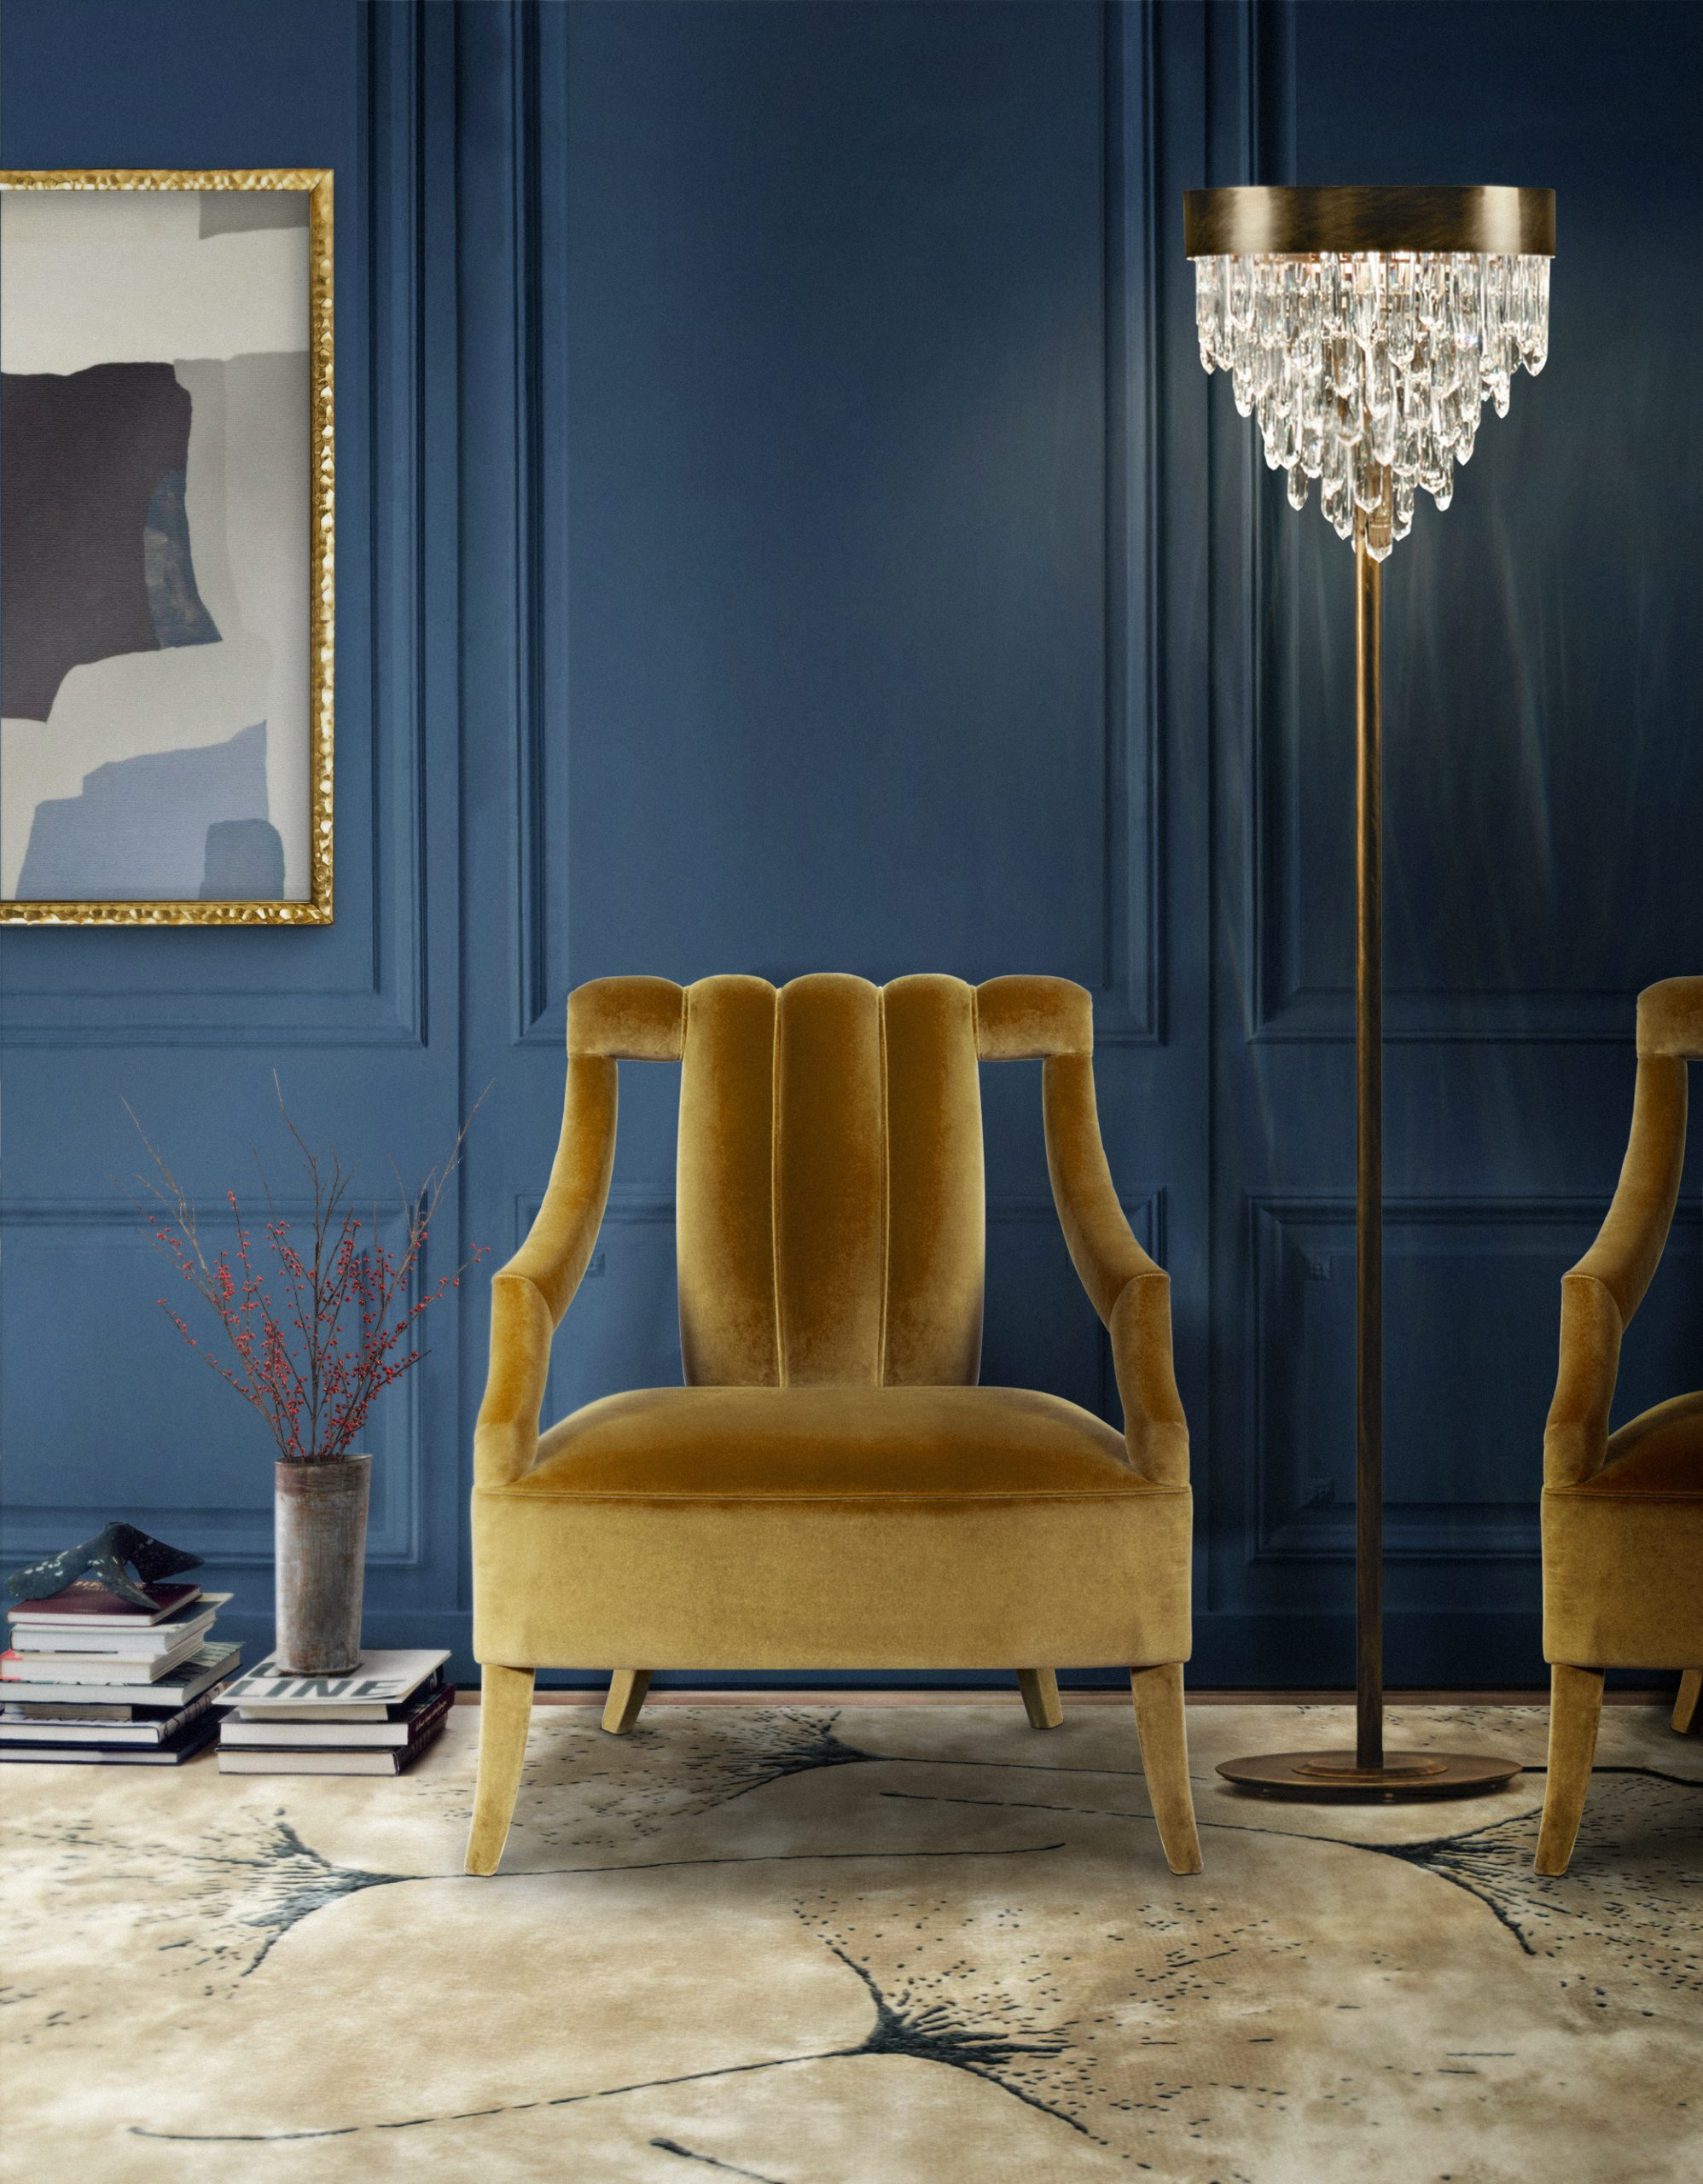 Yellow Chairs: Modern Design That Will Light Up Your House  yellow chairs Yellow Chairs: Modern Design That Will Light Up Your House Cayo Armchair  Nicca Floor Light scaled